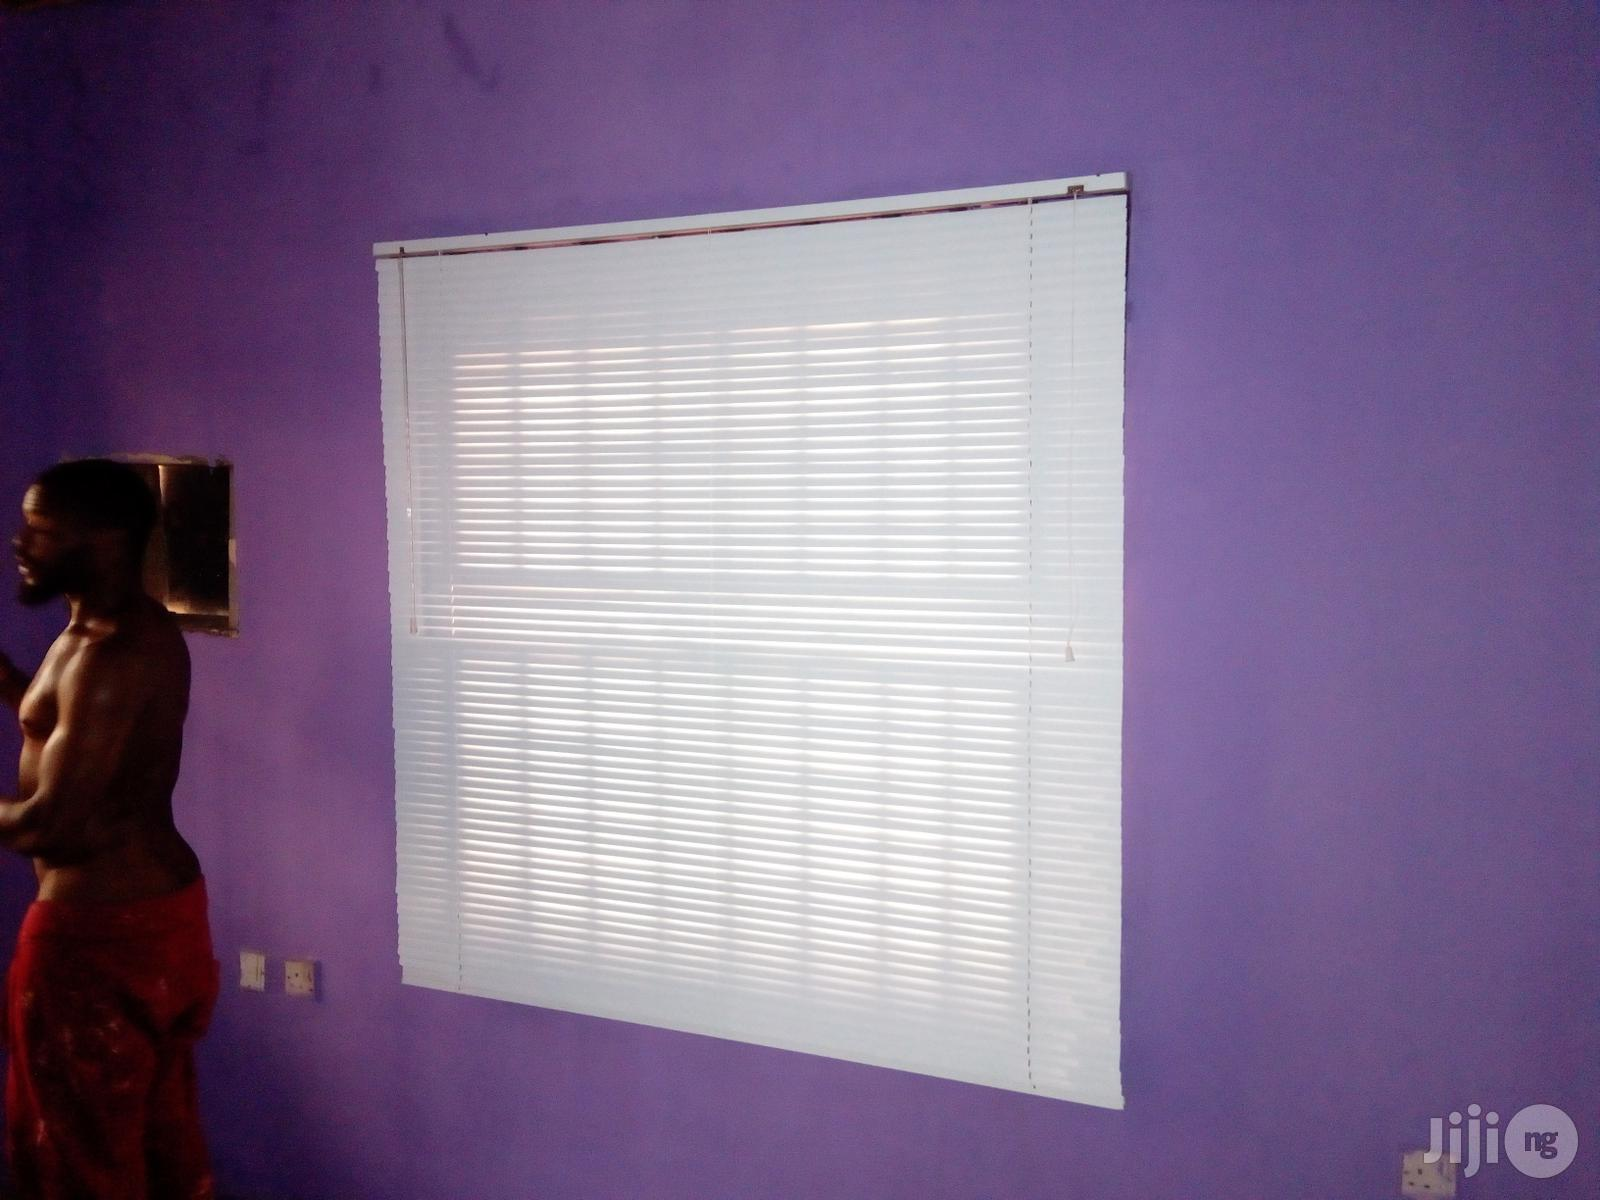 Window Blind Interior Curtain | Home Accessories for sale in Port-Harcourt, Rivers State, Nigeria